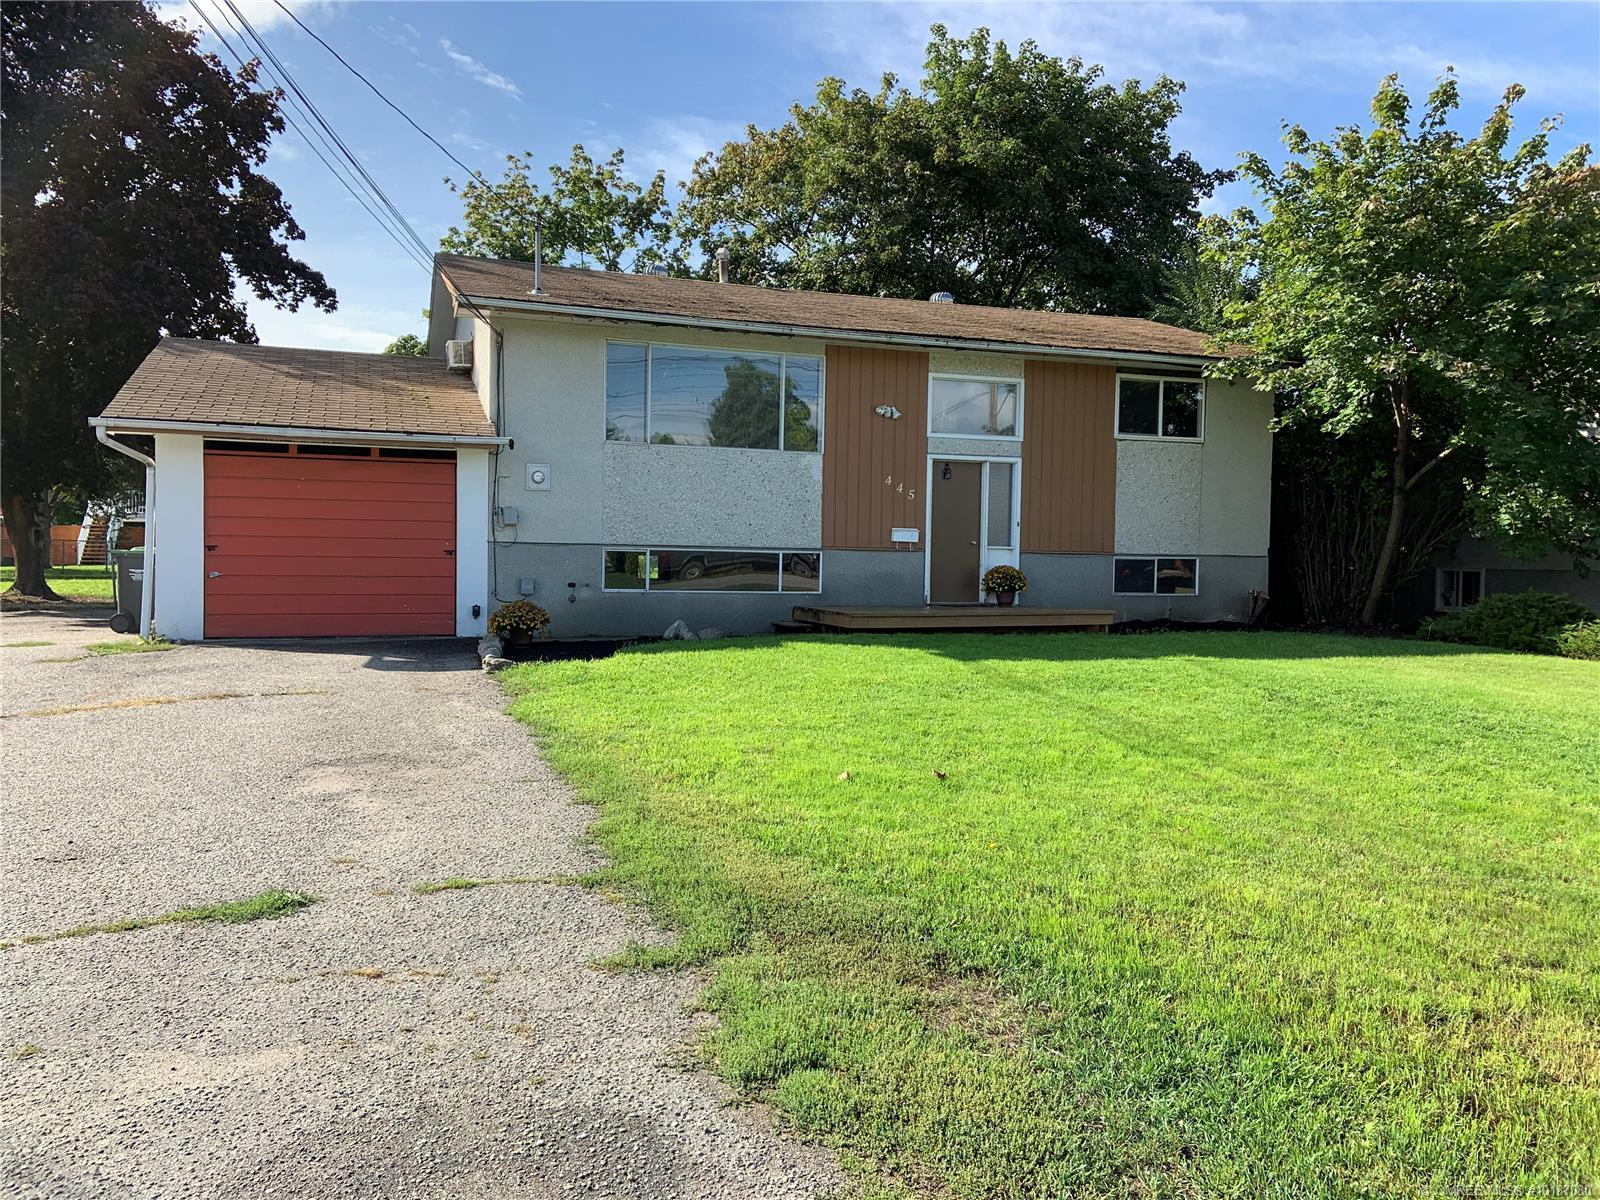 Removed: 445 Mallach Road, Kelowna, BC - Removed on 2019-10-02 22:18:17